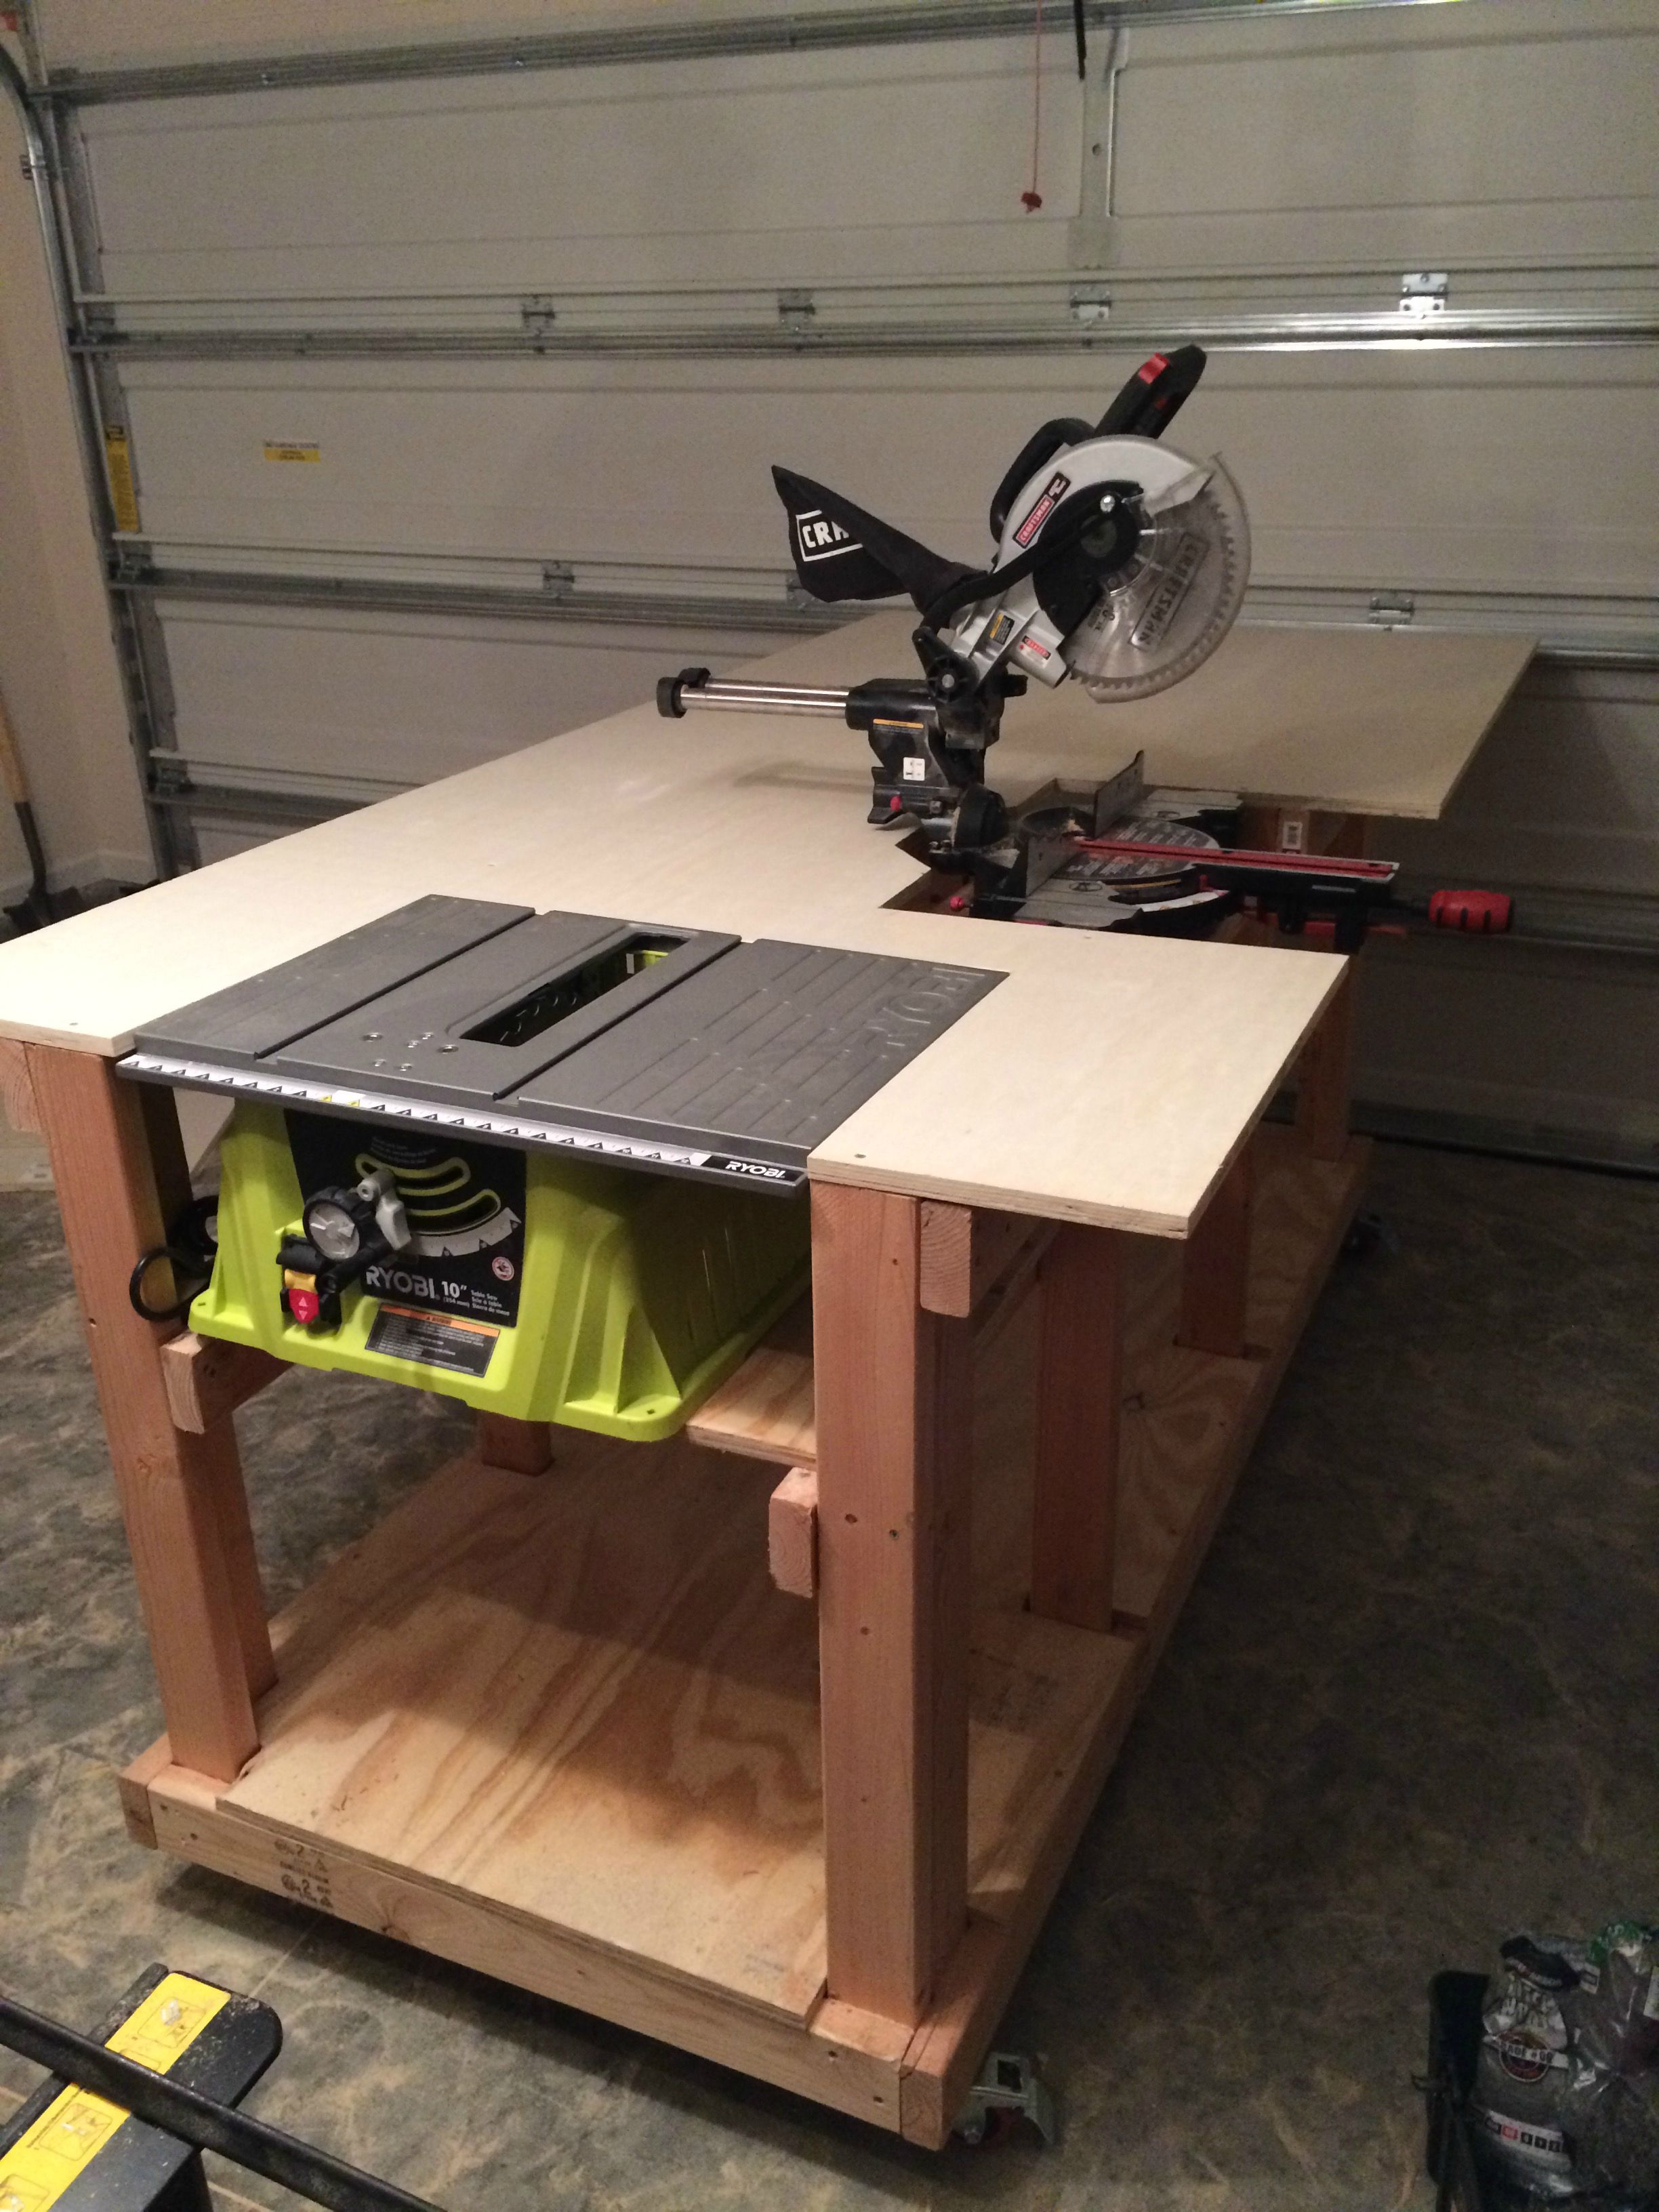 DIY Workbench Diy workbench, Woodworking and Wood working